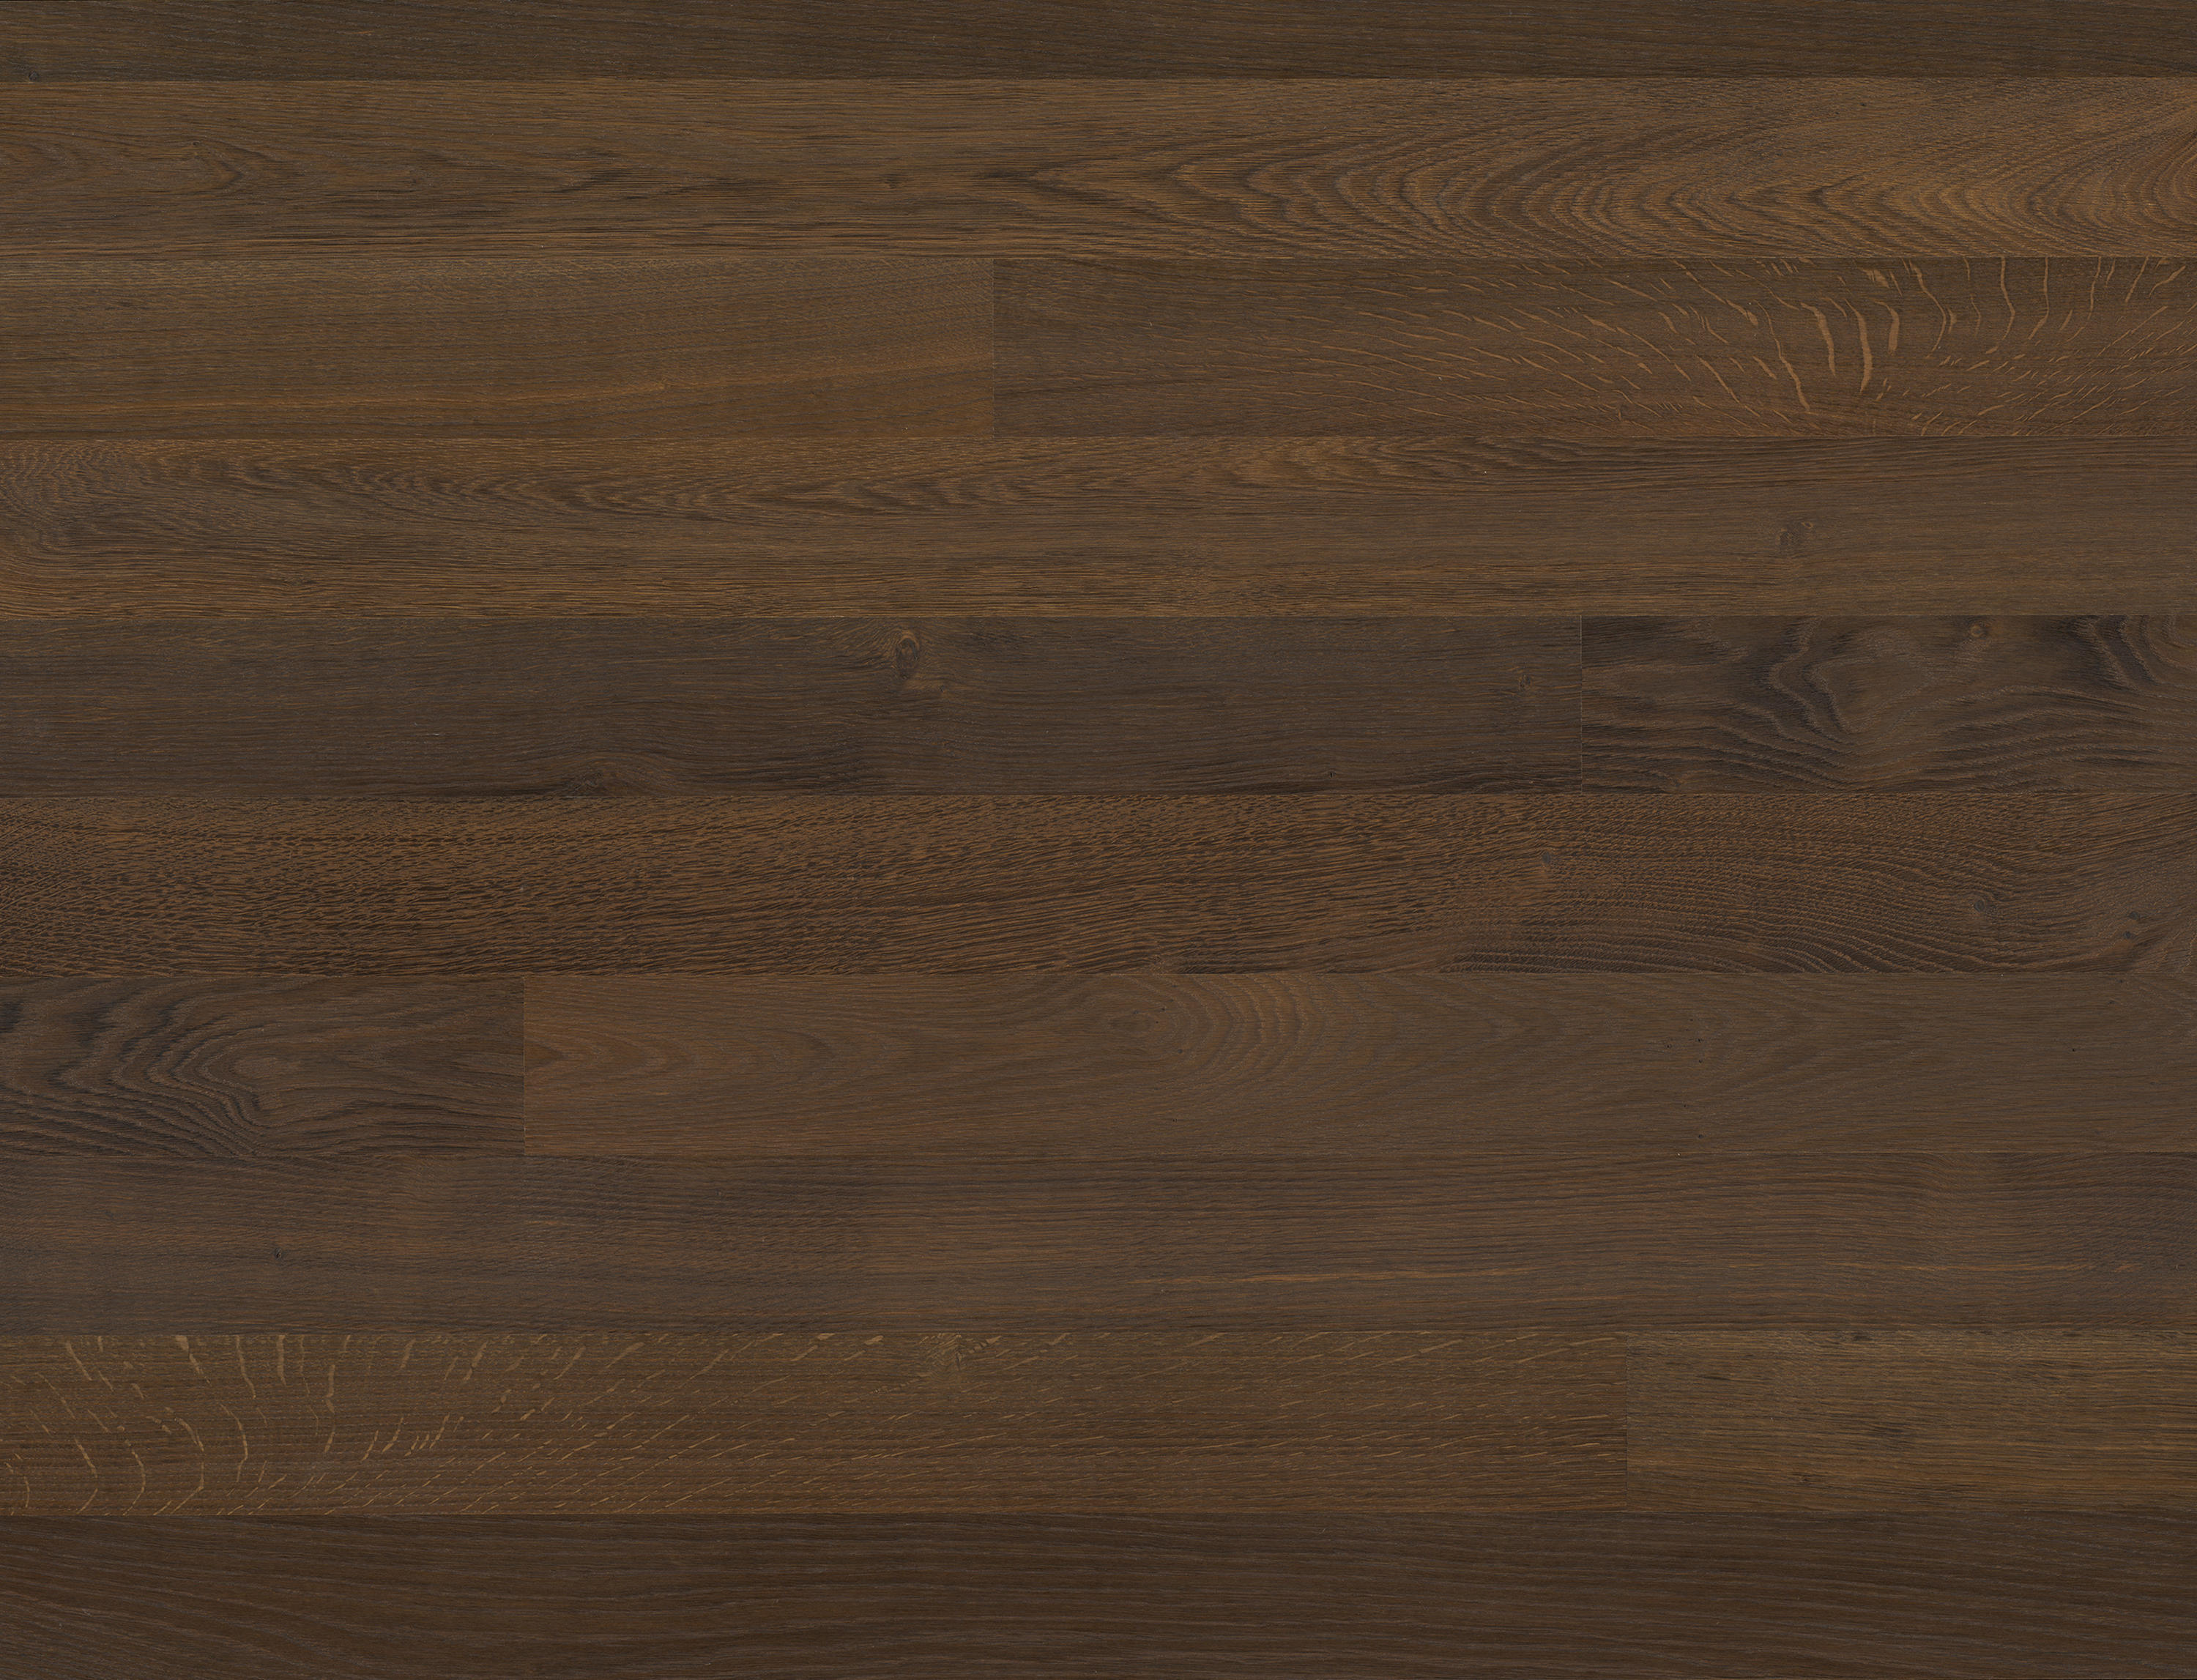 cleverpark oak smoked 14 wood flooring from bauwerk parkett architonic. Black Bedroom Furniture Sets. Home Design Ideas